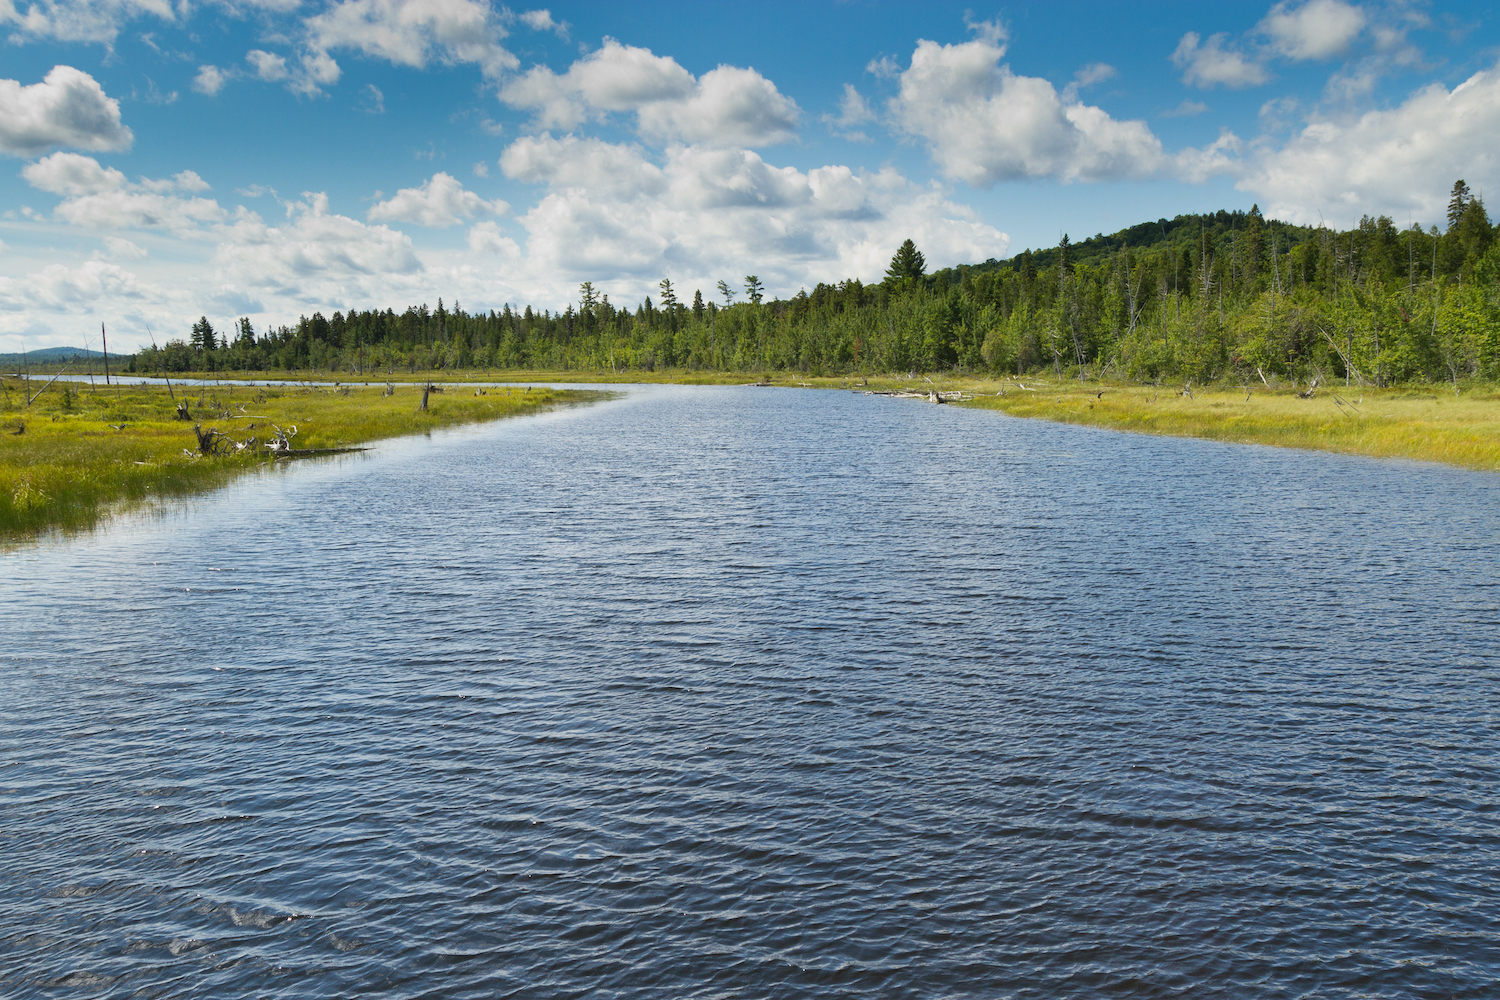 View of one of the rivers in Allagash Wilderness Waterway area in the North woods in Maine